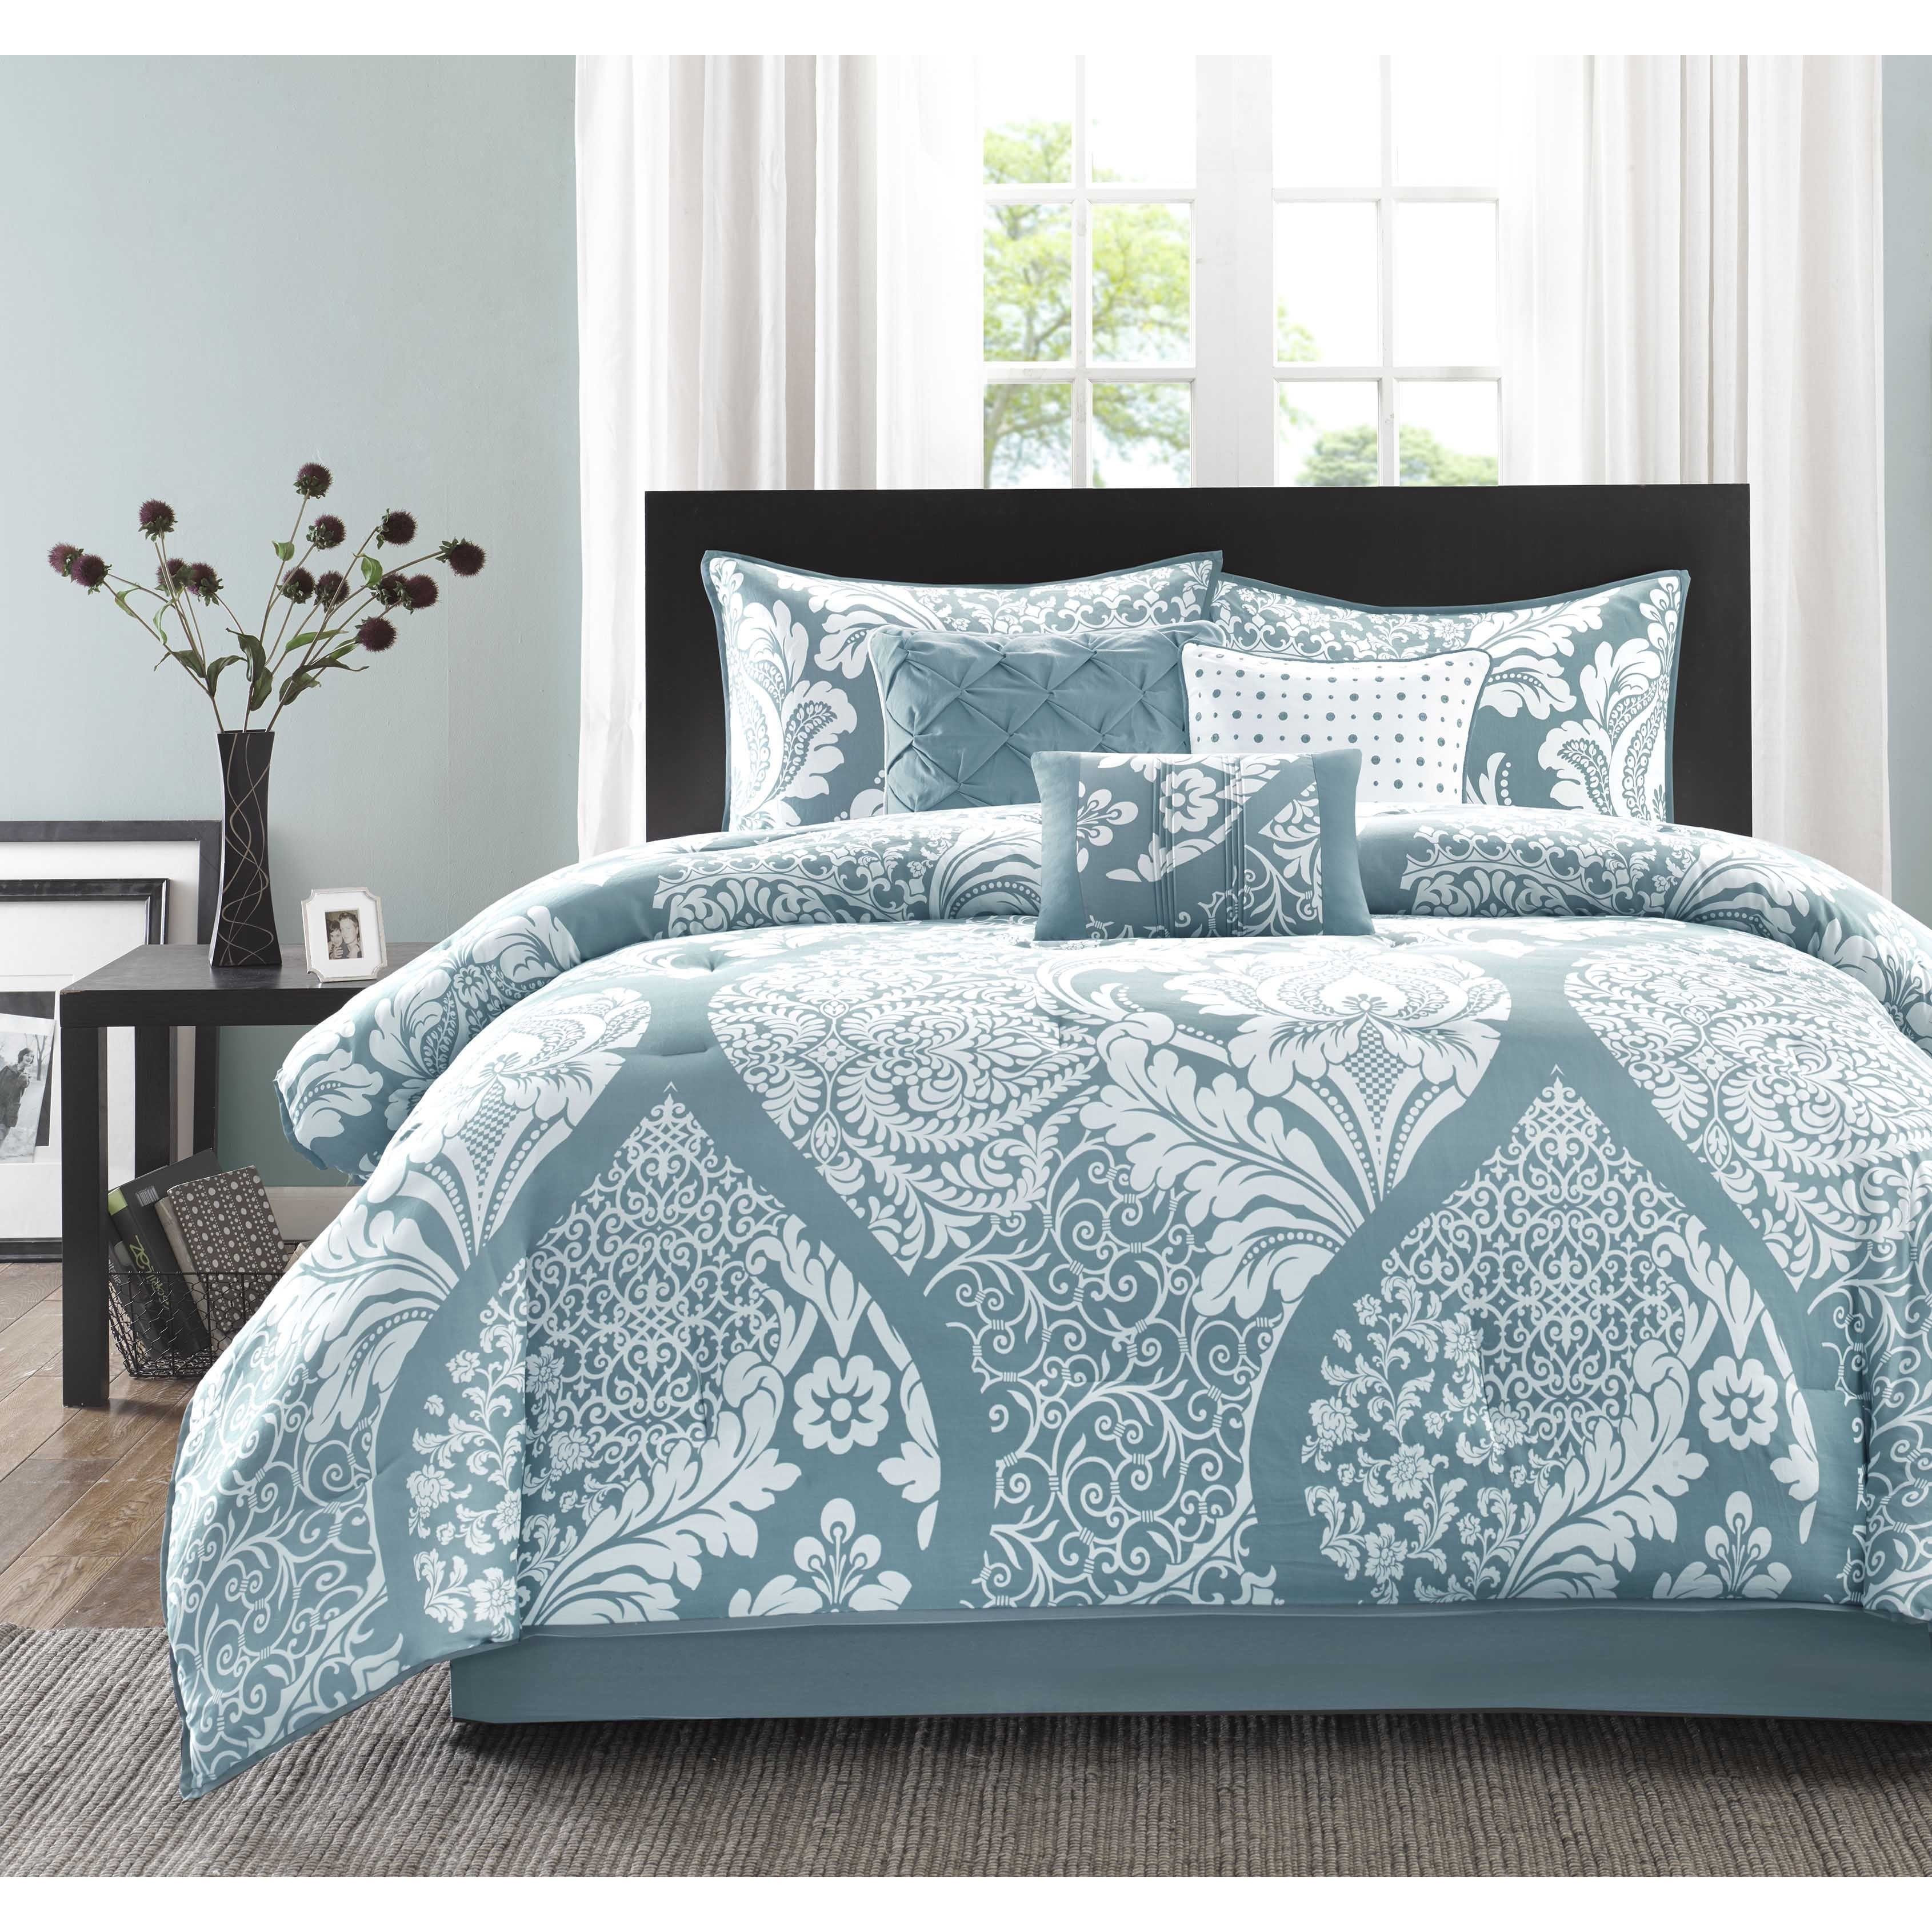 Overstock daybed bedding home design ideas - Fashion Bedding Free Shipping On Orders Over 45 At Overstock Com Your Online